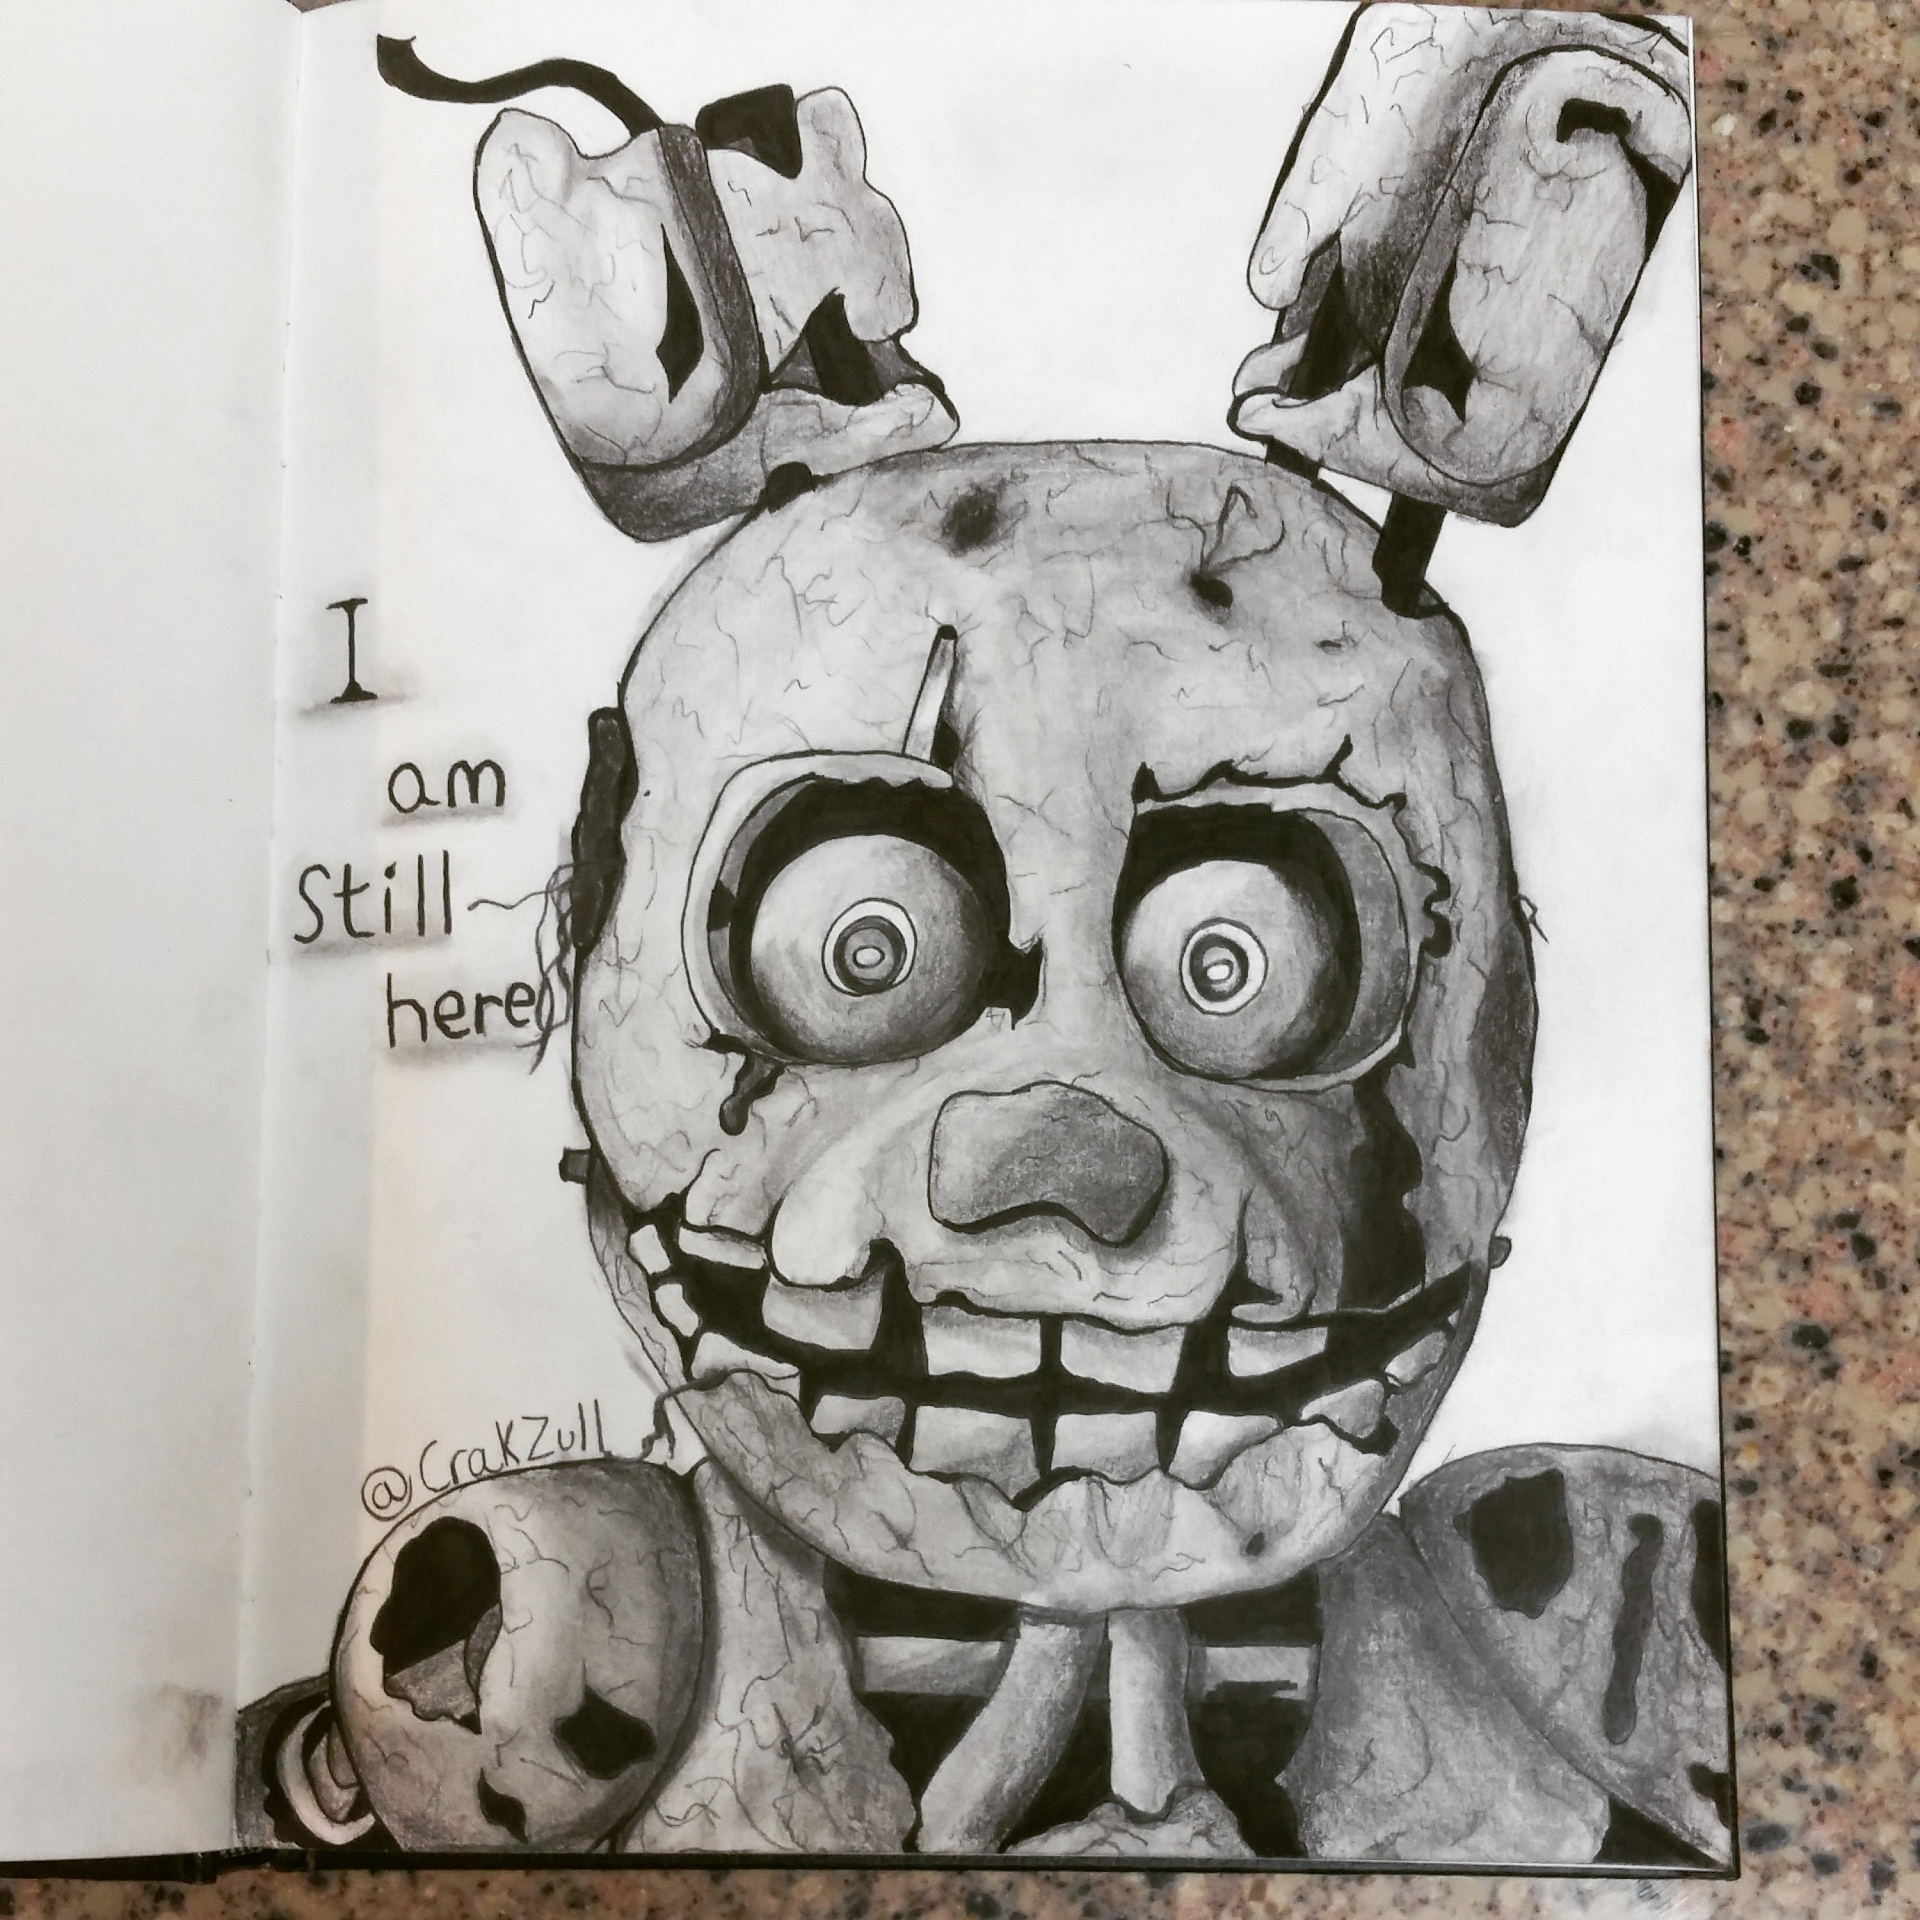 Five nights at freddys 3 animatronic sketch by artofgames on